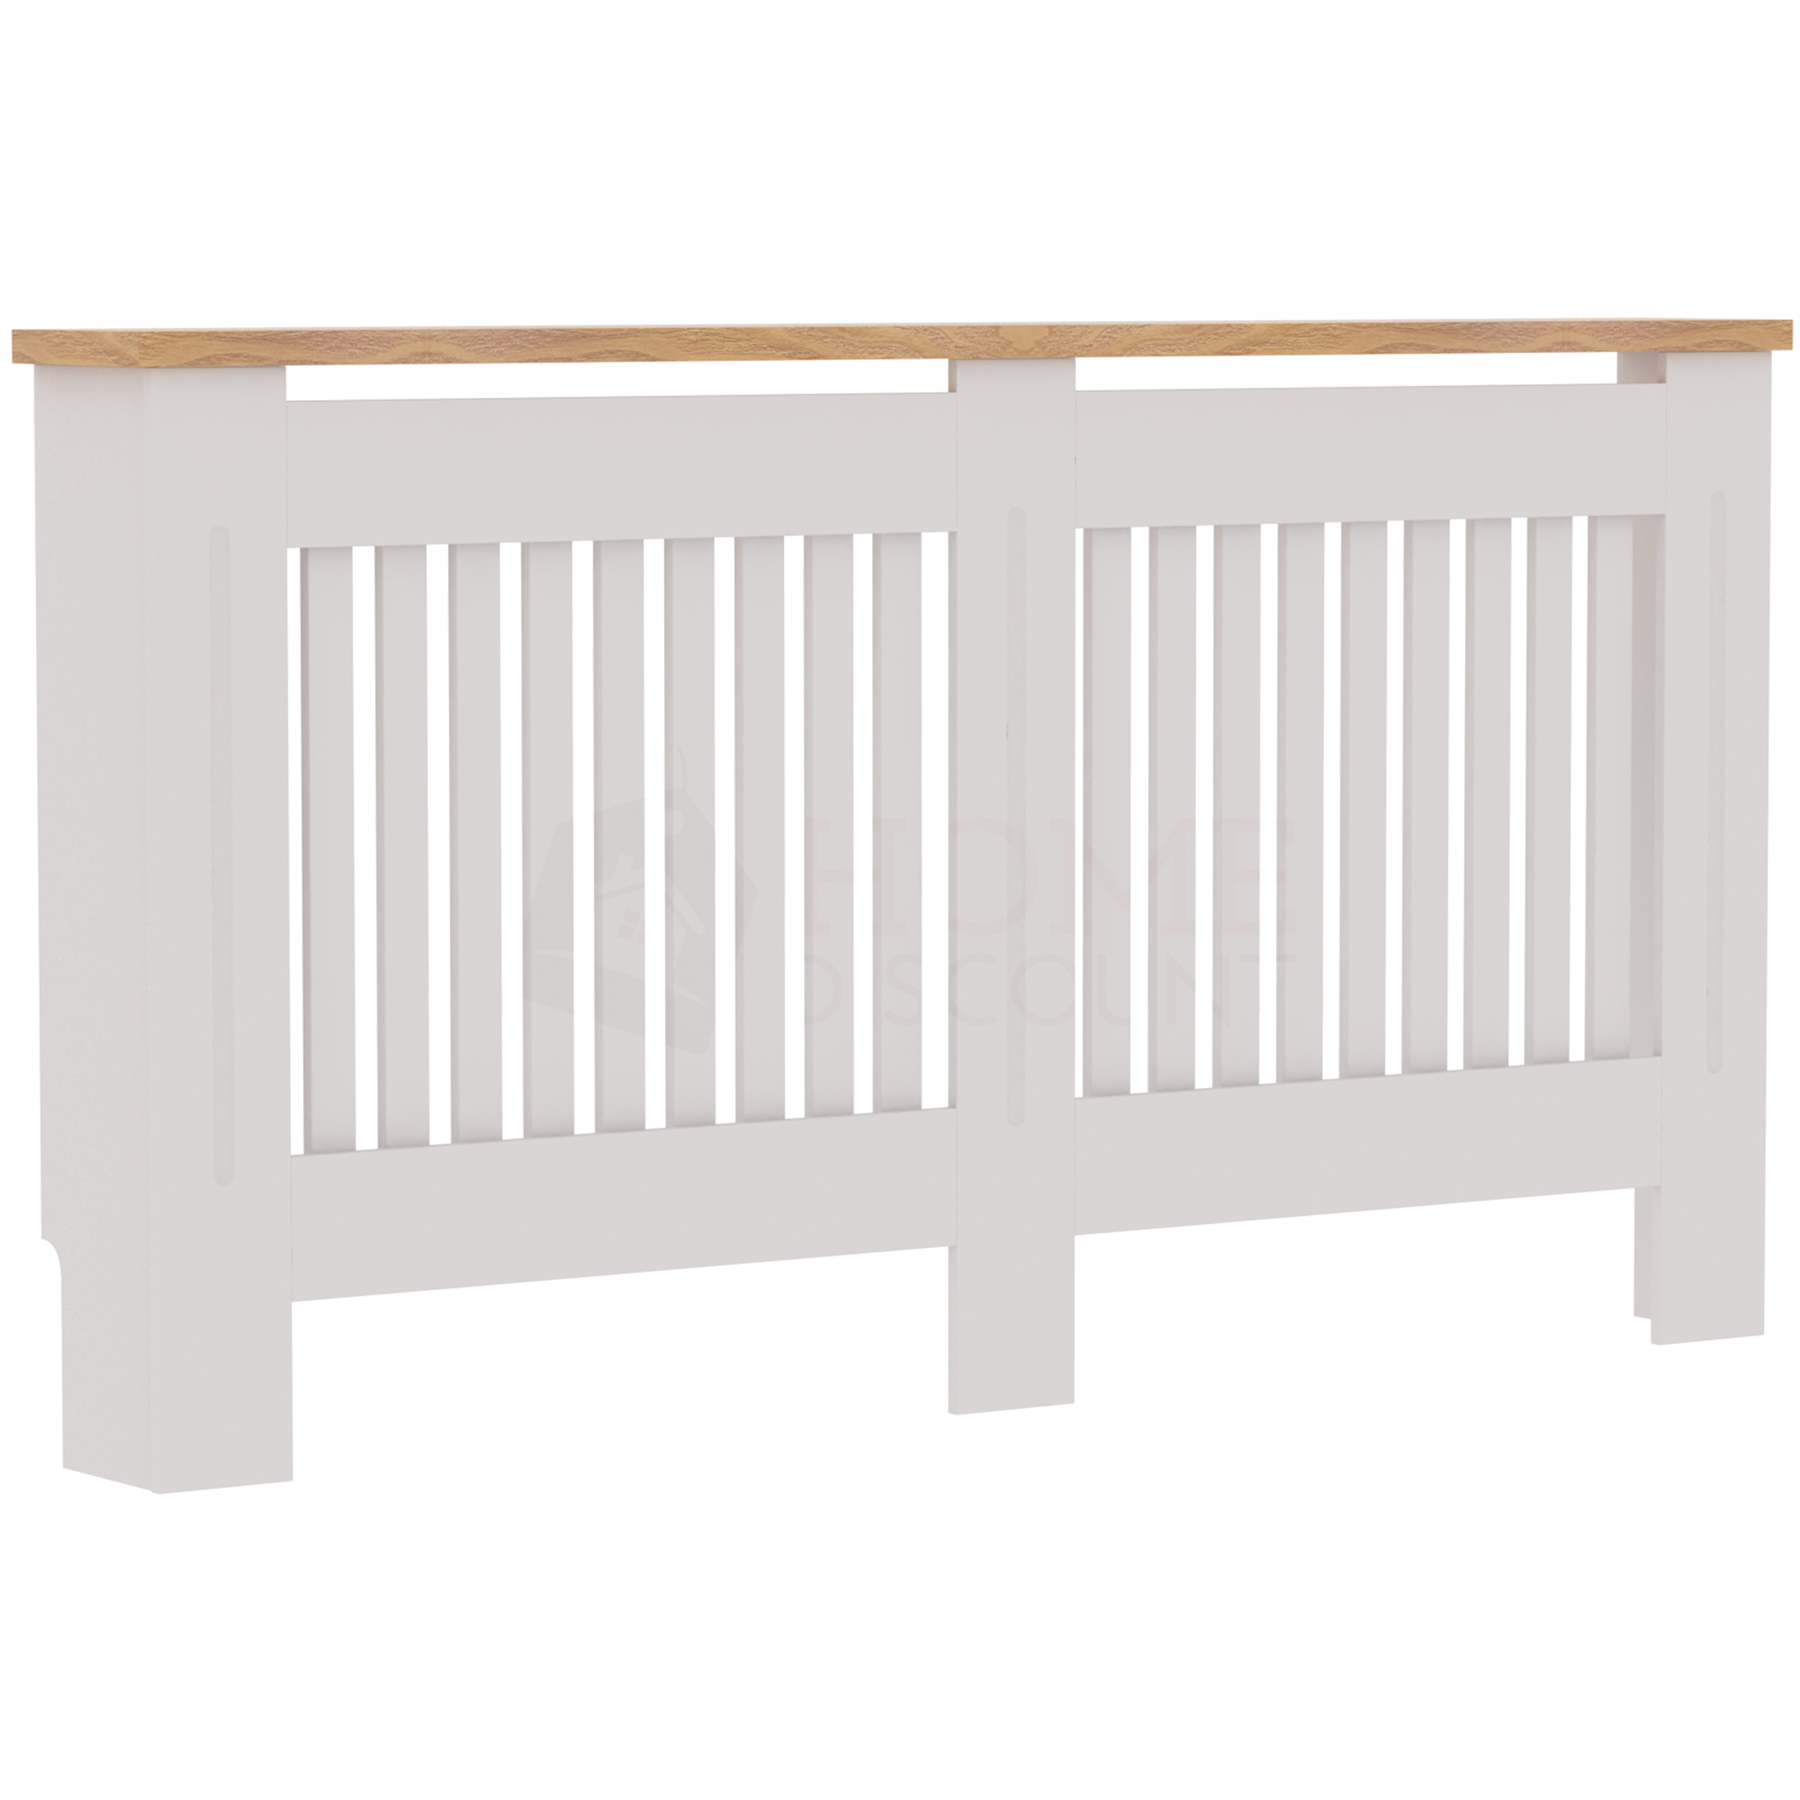 thumbnail 25 - Radiator Cover White Unfinished Modern Traditional Wood Grill Cabinet Furniture